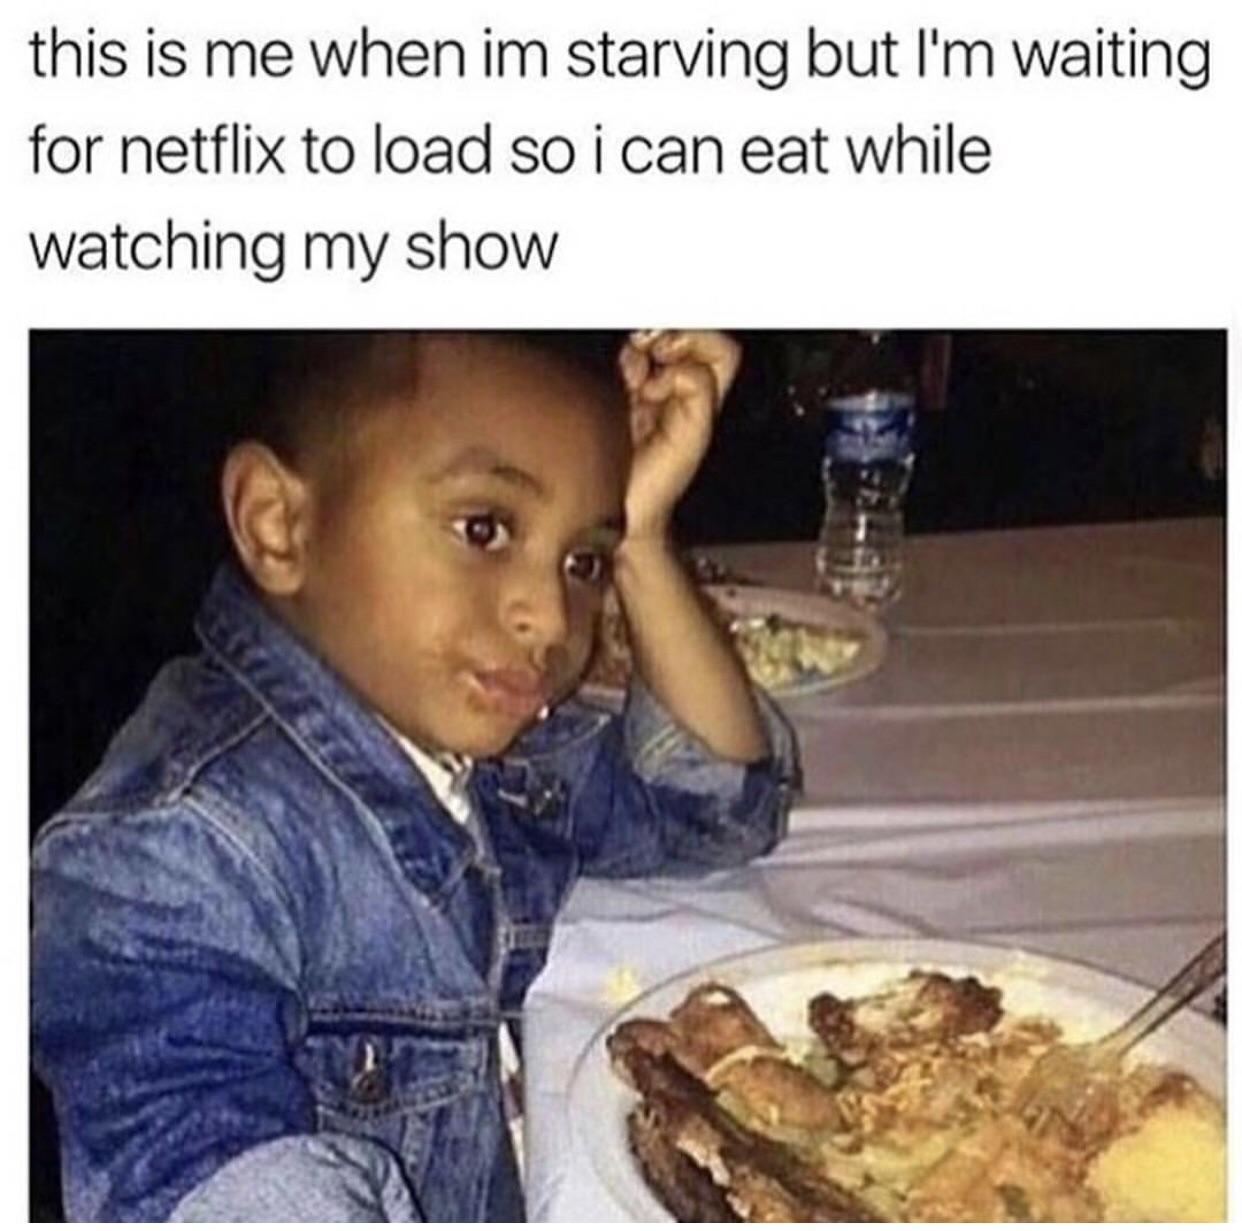 The struggles of Netflix and food